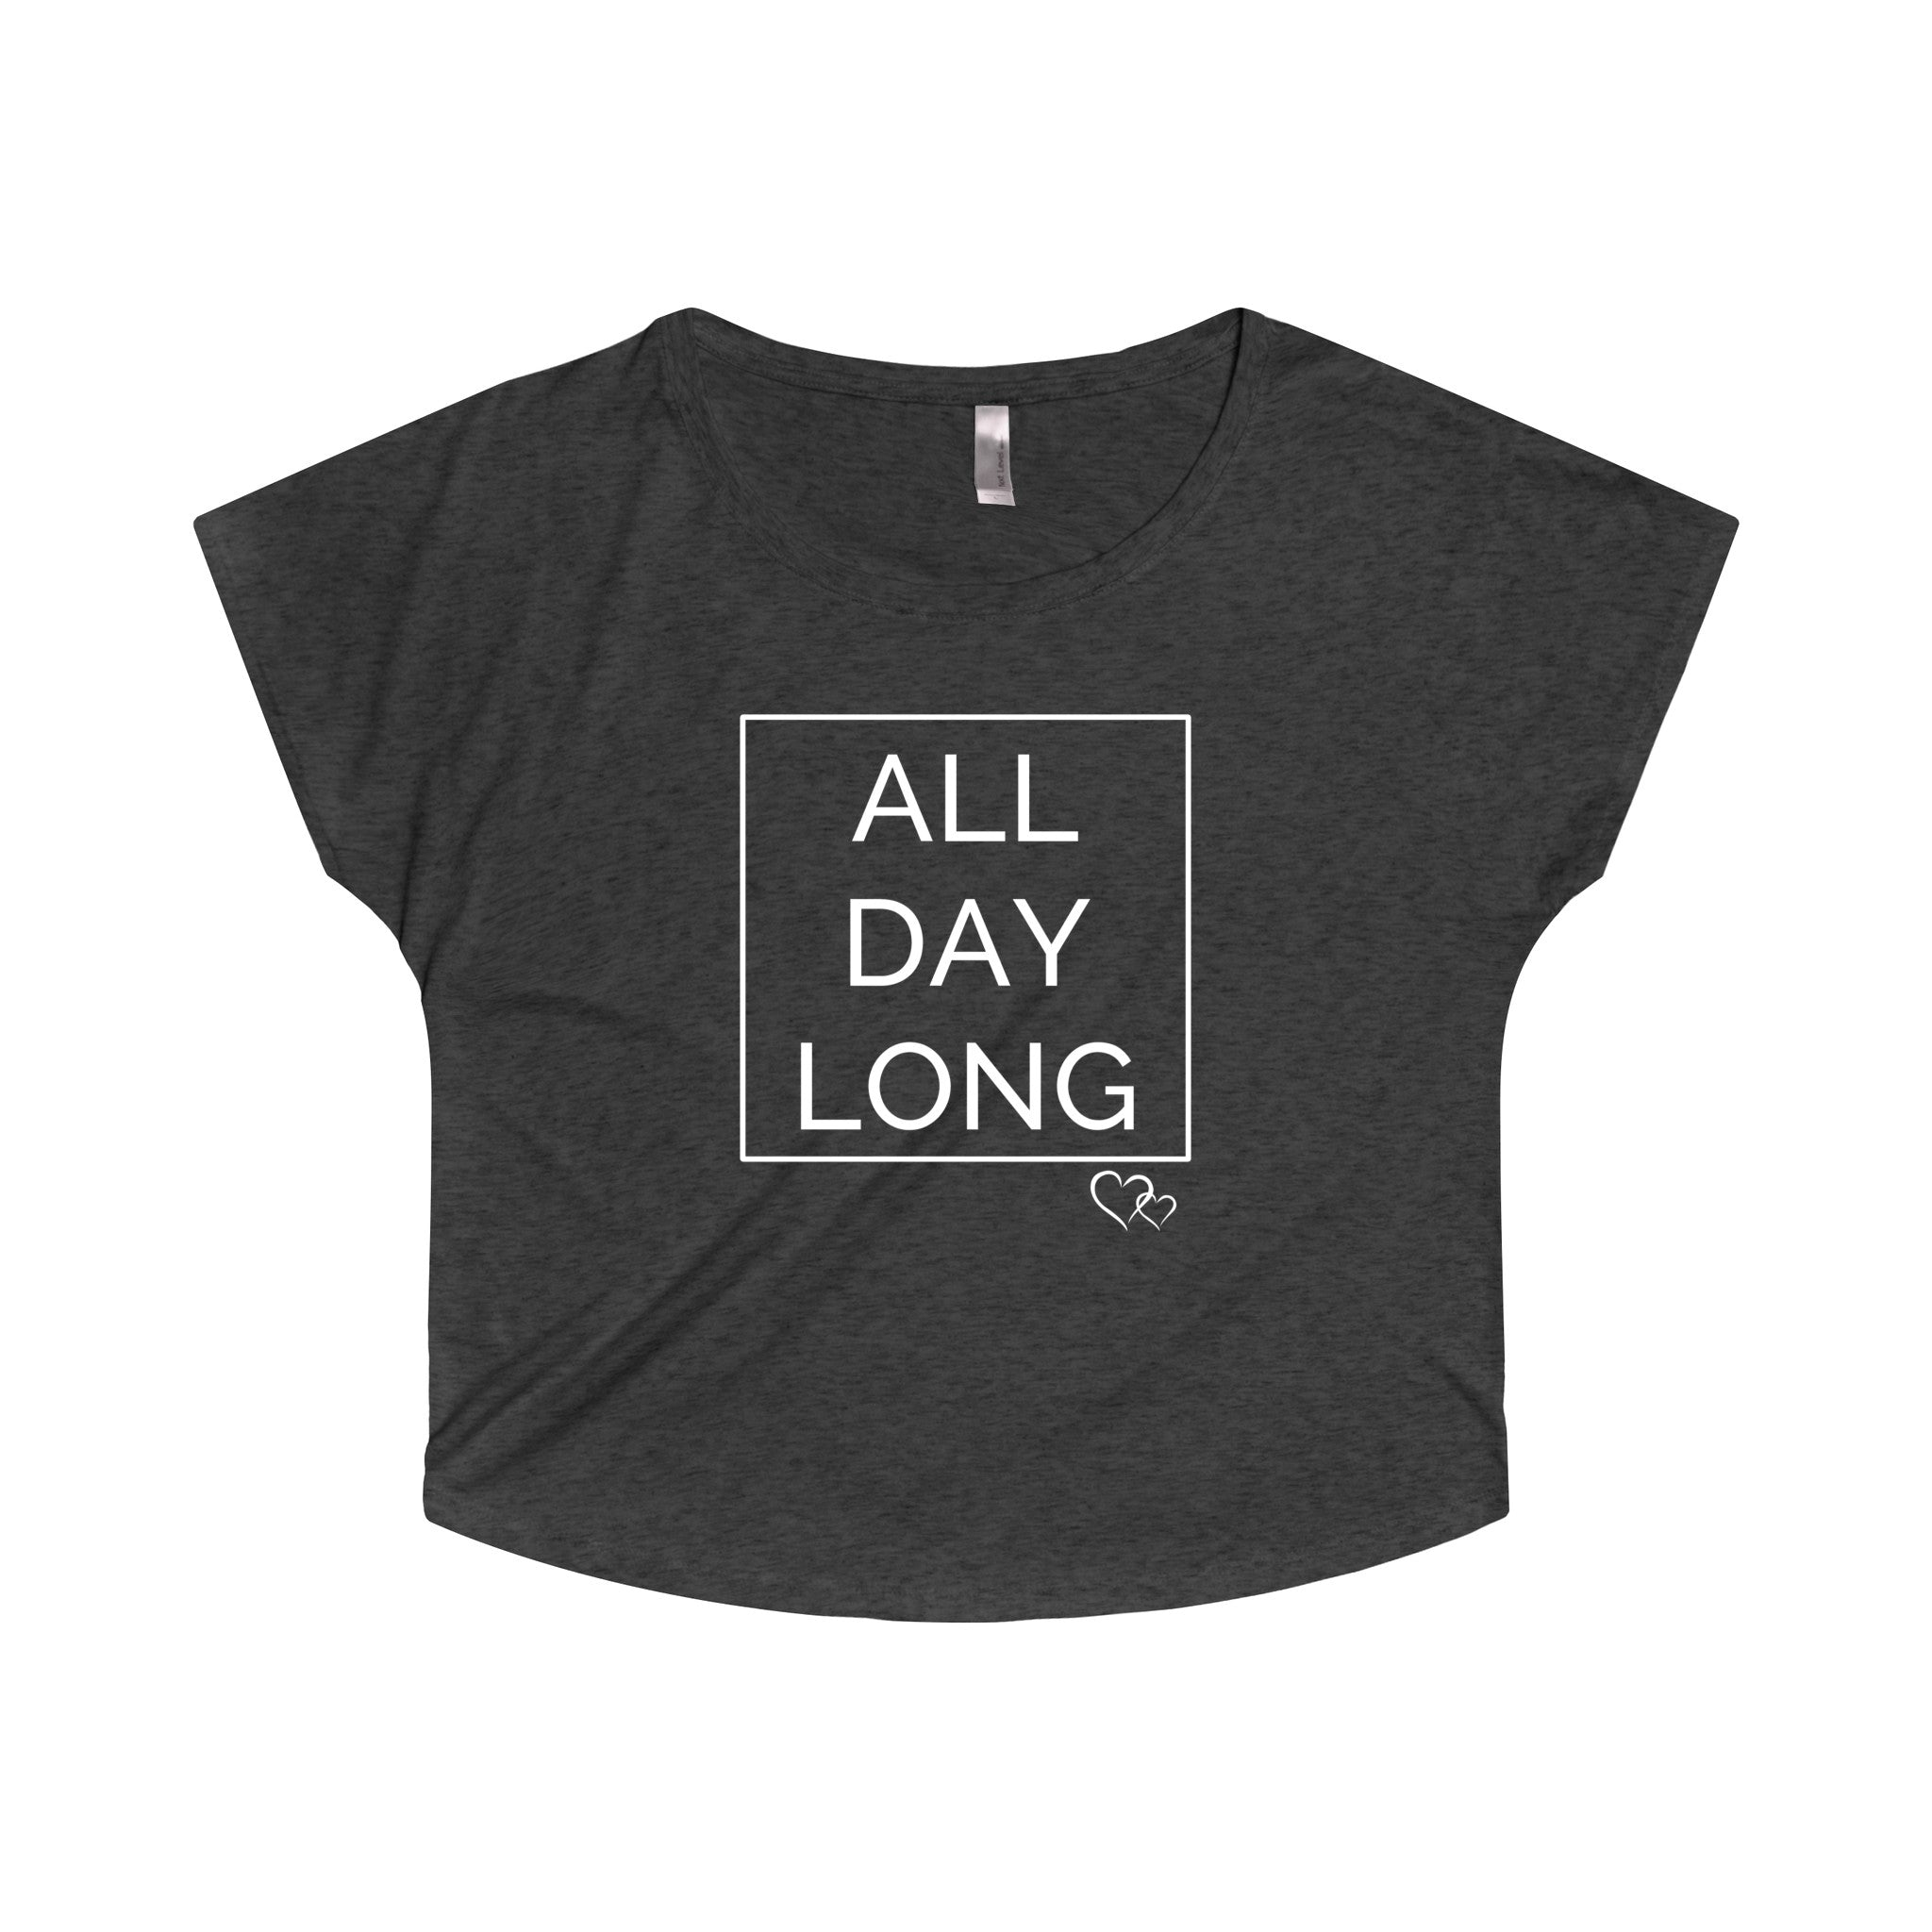 ALL DAY LONG - Loose Dolman Sleeve